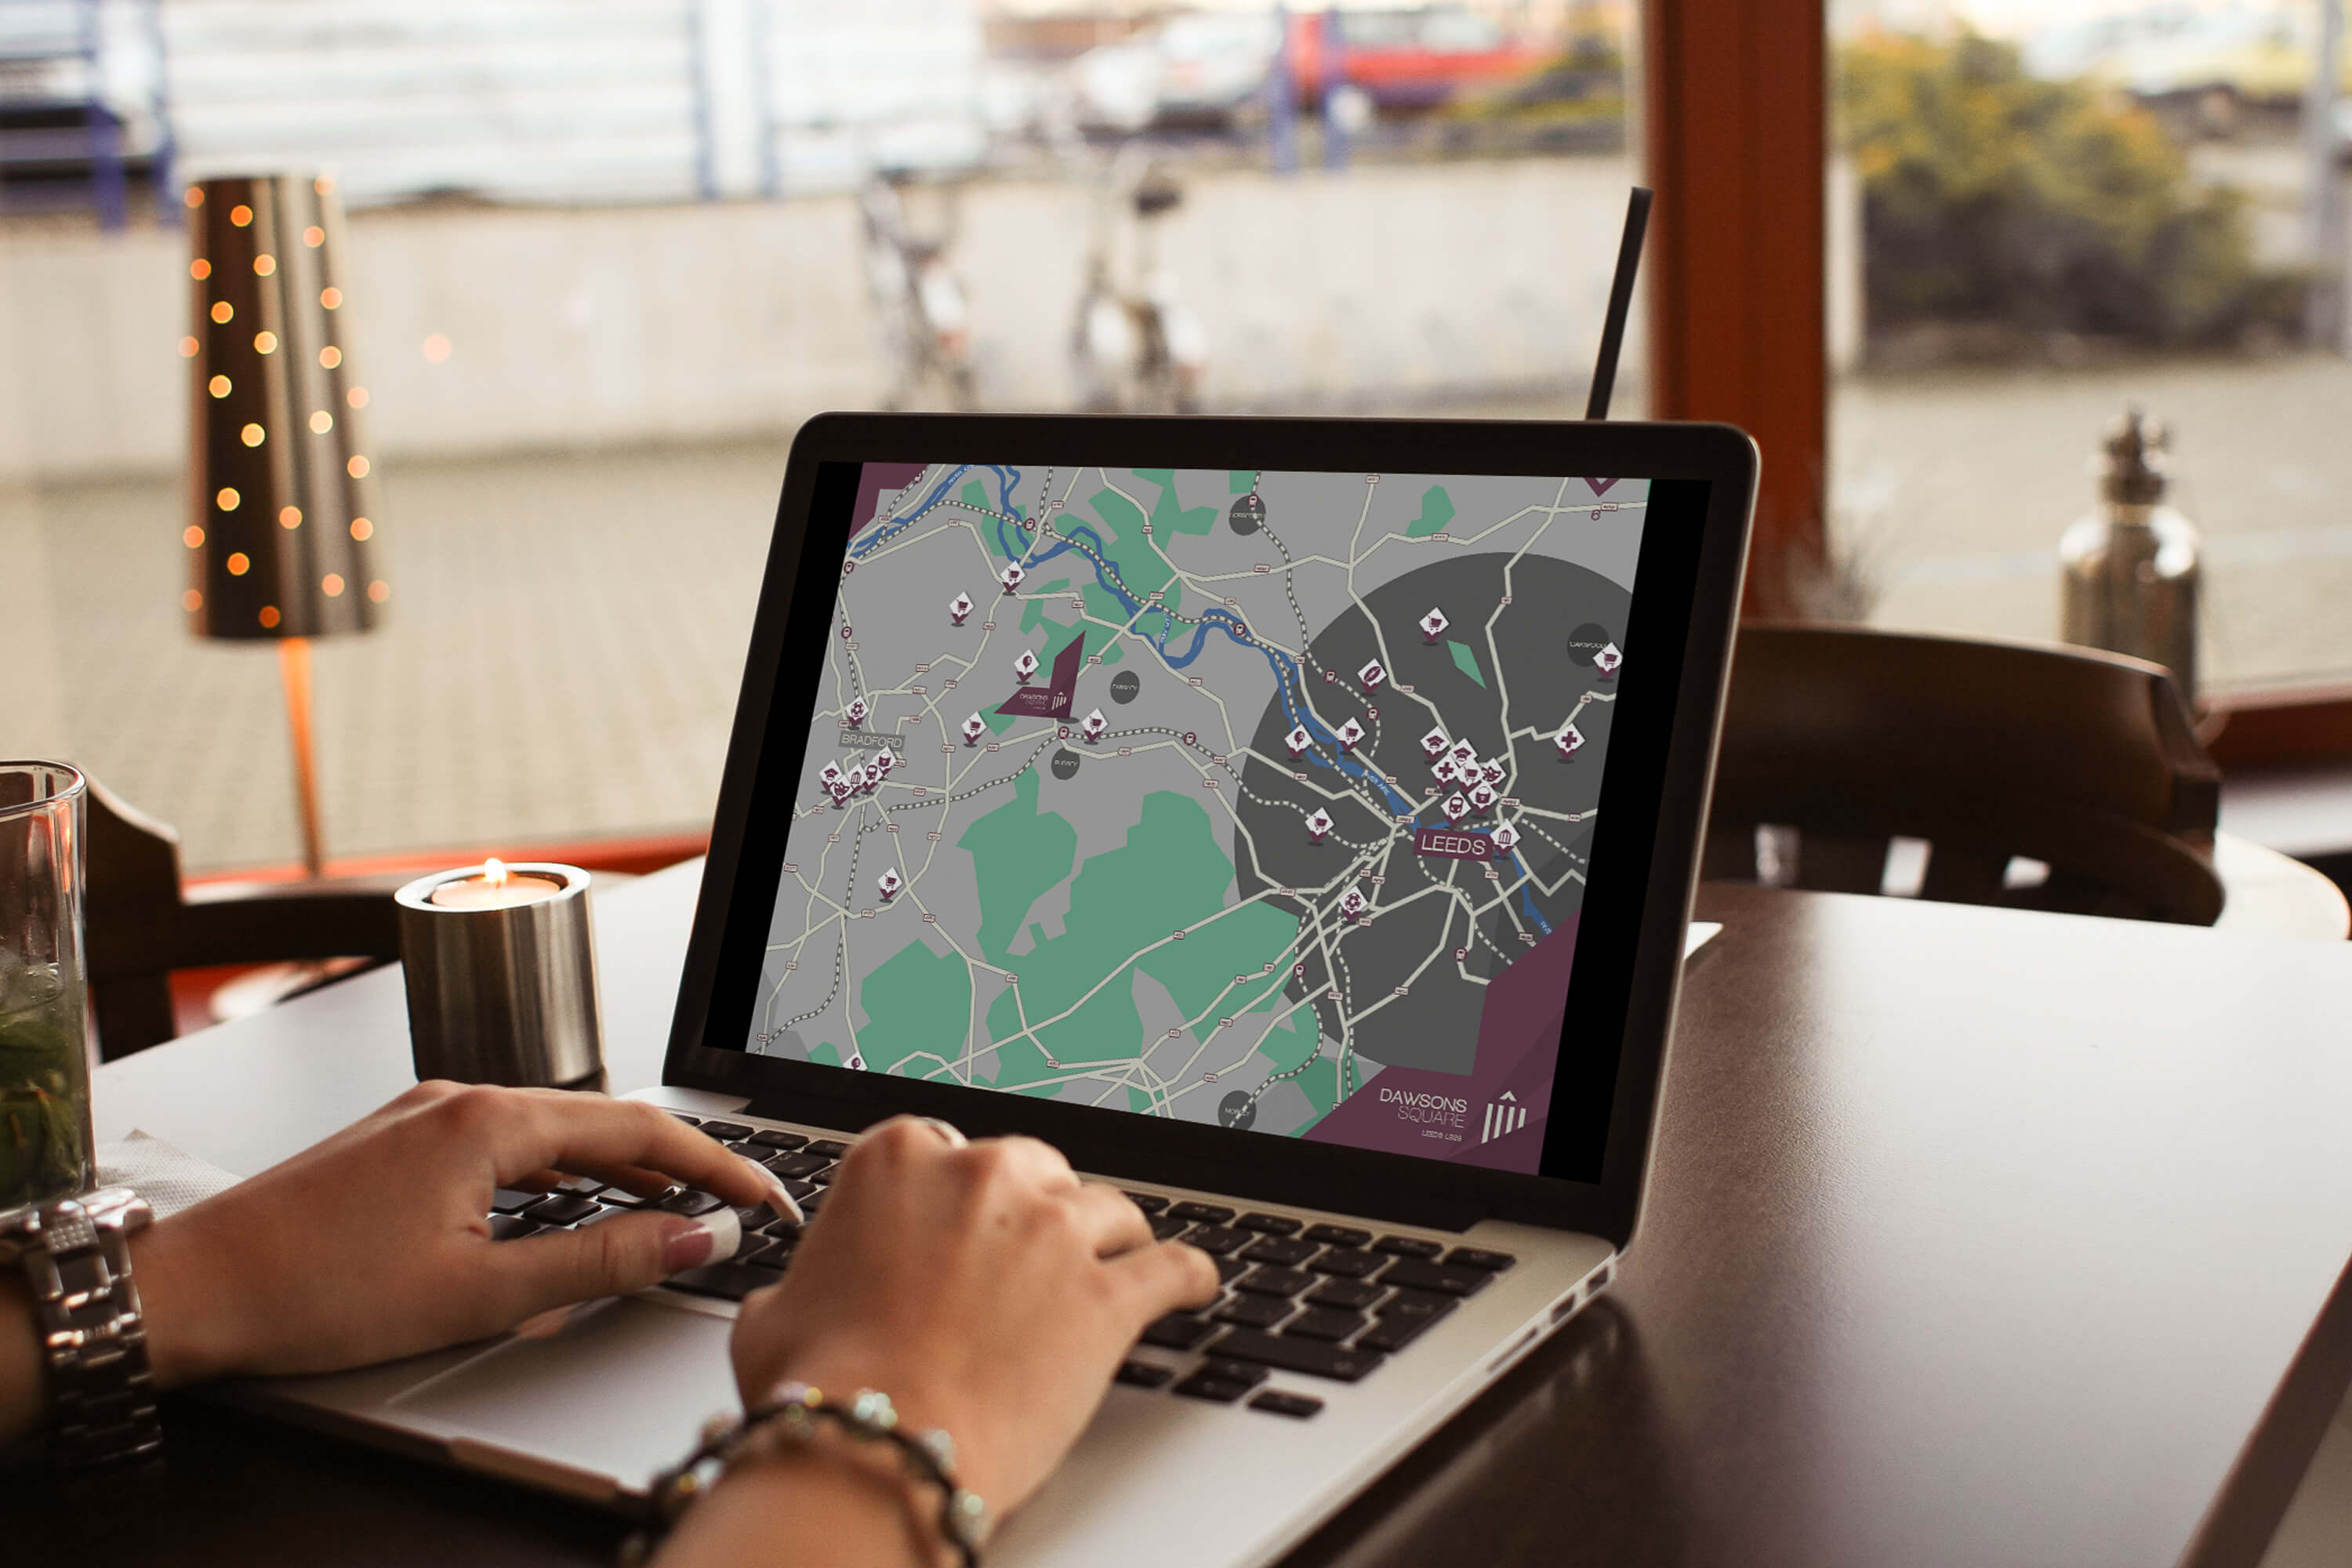 A laptop showing the bespoke Dawsons Square map design